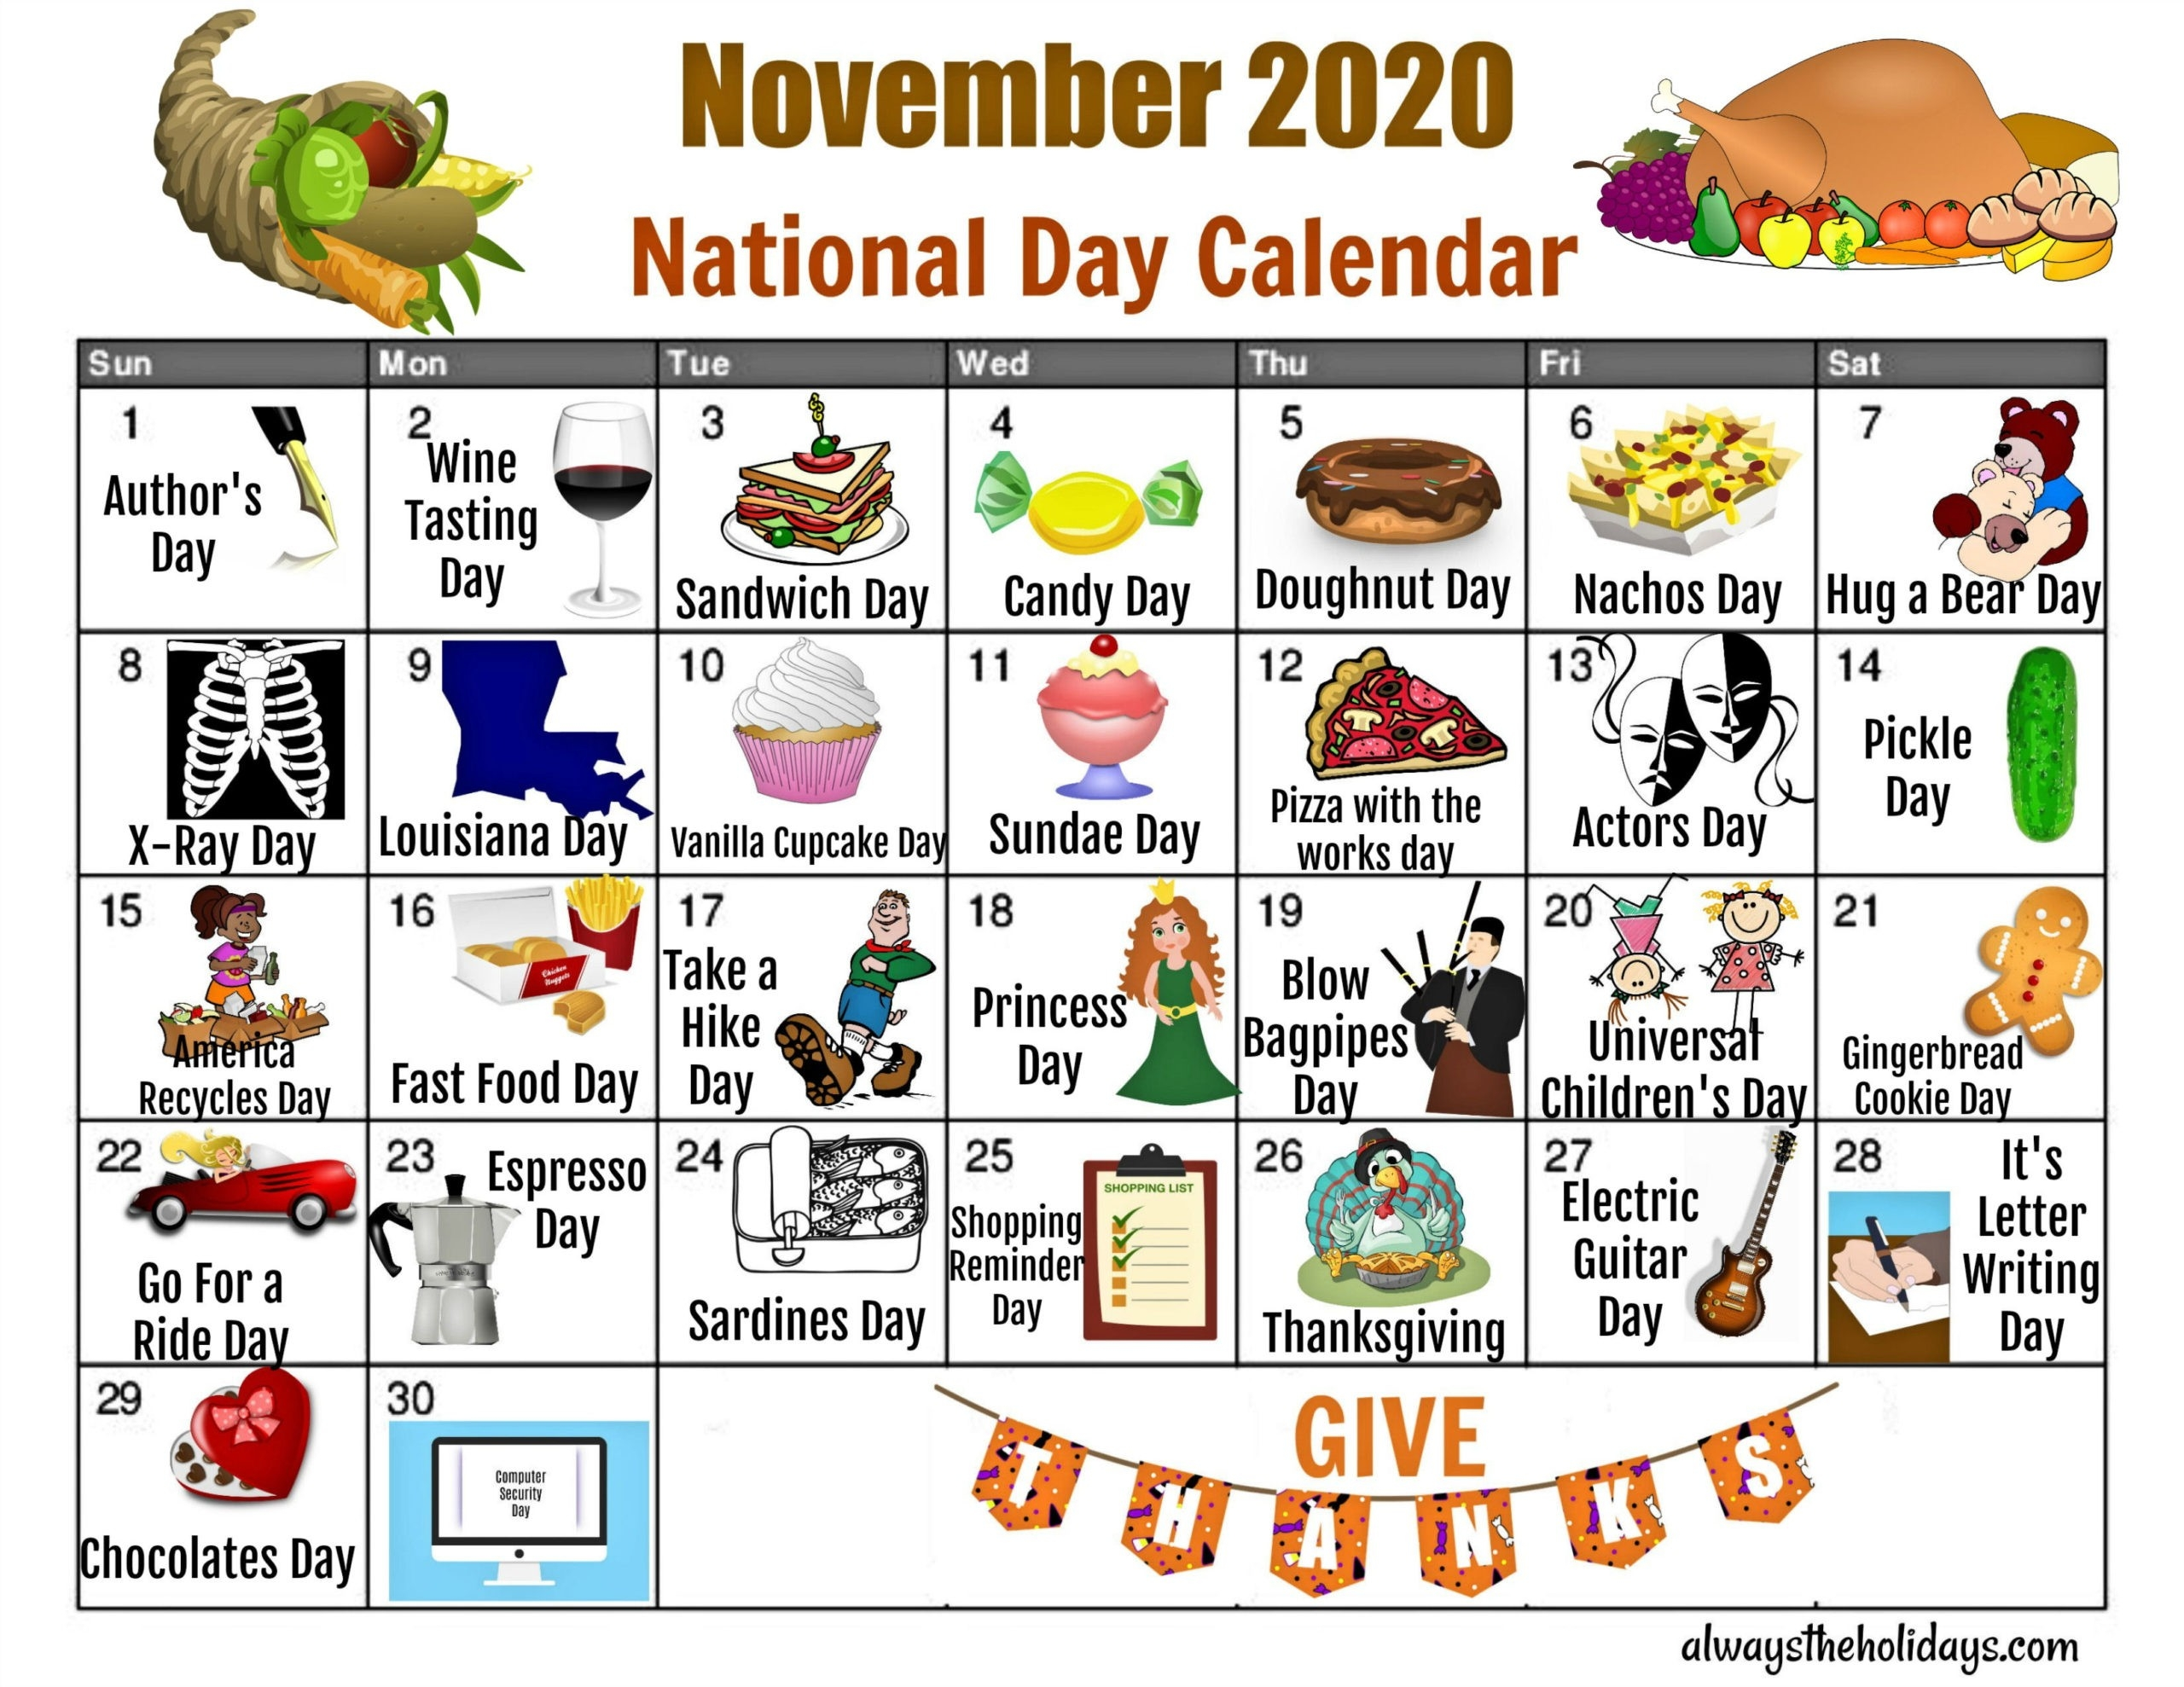 November National Day Calendar - Free Printable Calendars  Printable Calendar Of National Days 2021